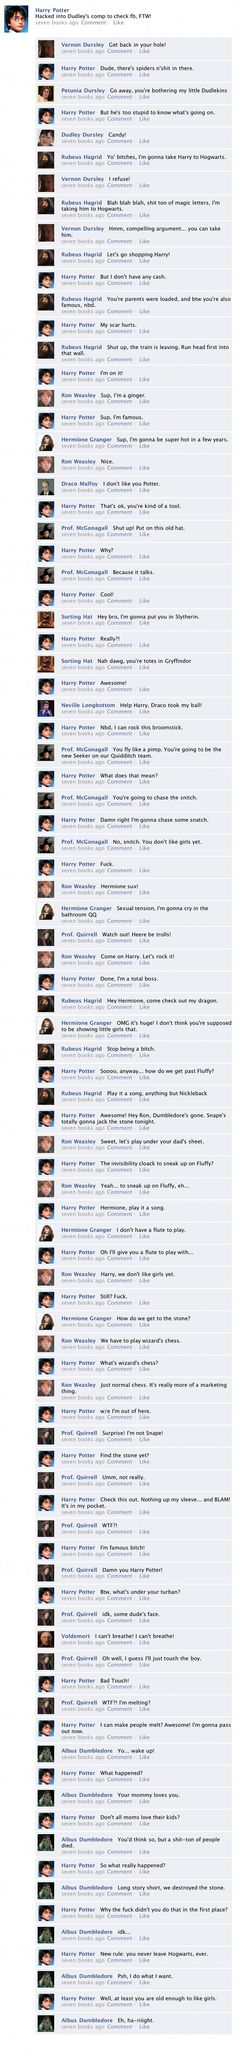 """The Entirety of """"Harry Potter and the Sorcerer's Stone"""" in one Facebook Thread......haha its fantastic and worth the read"""